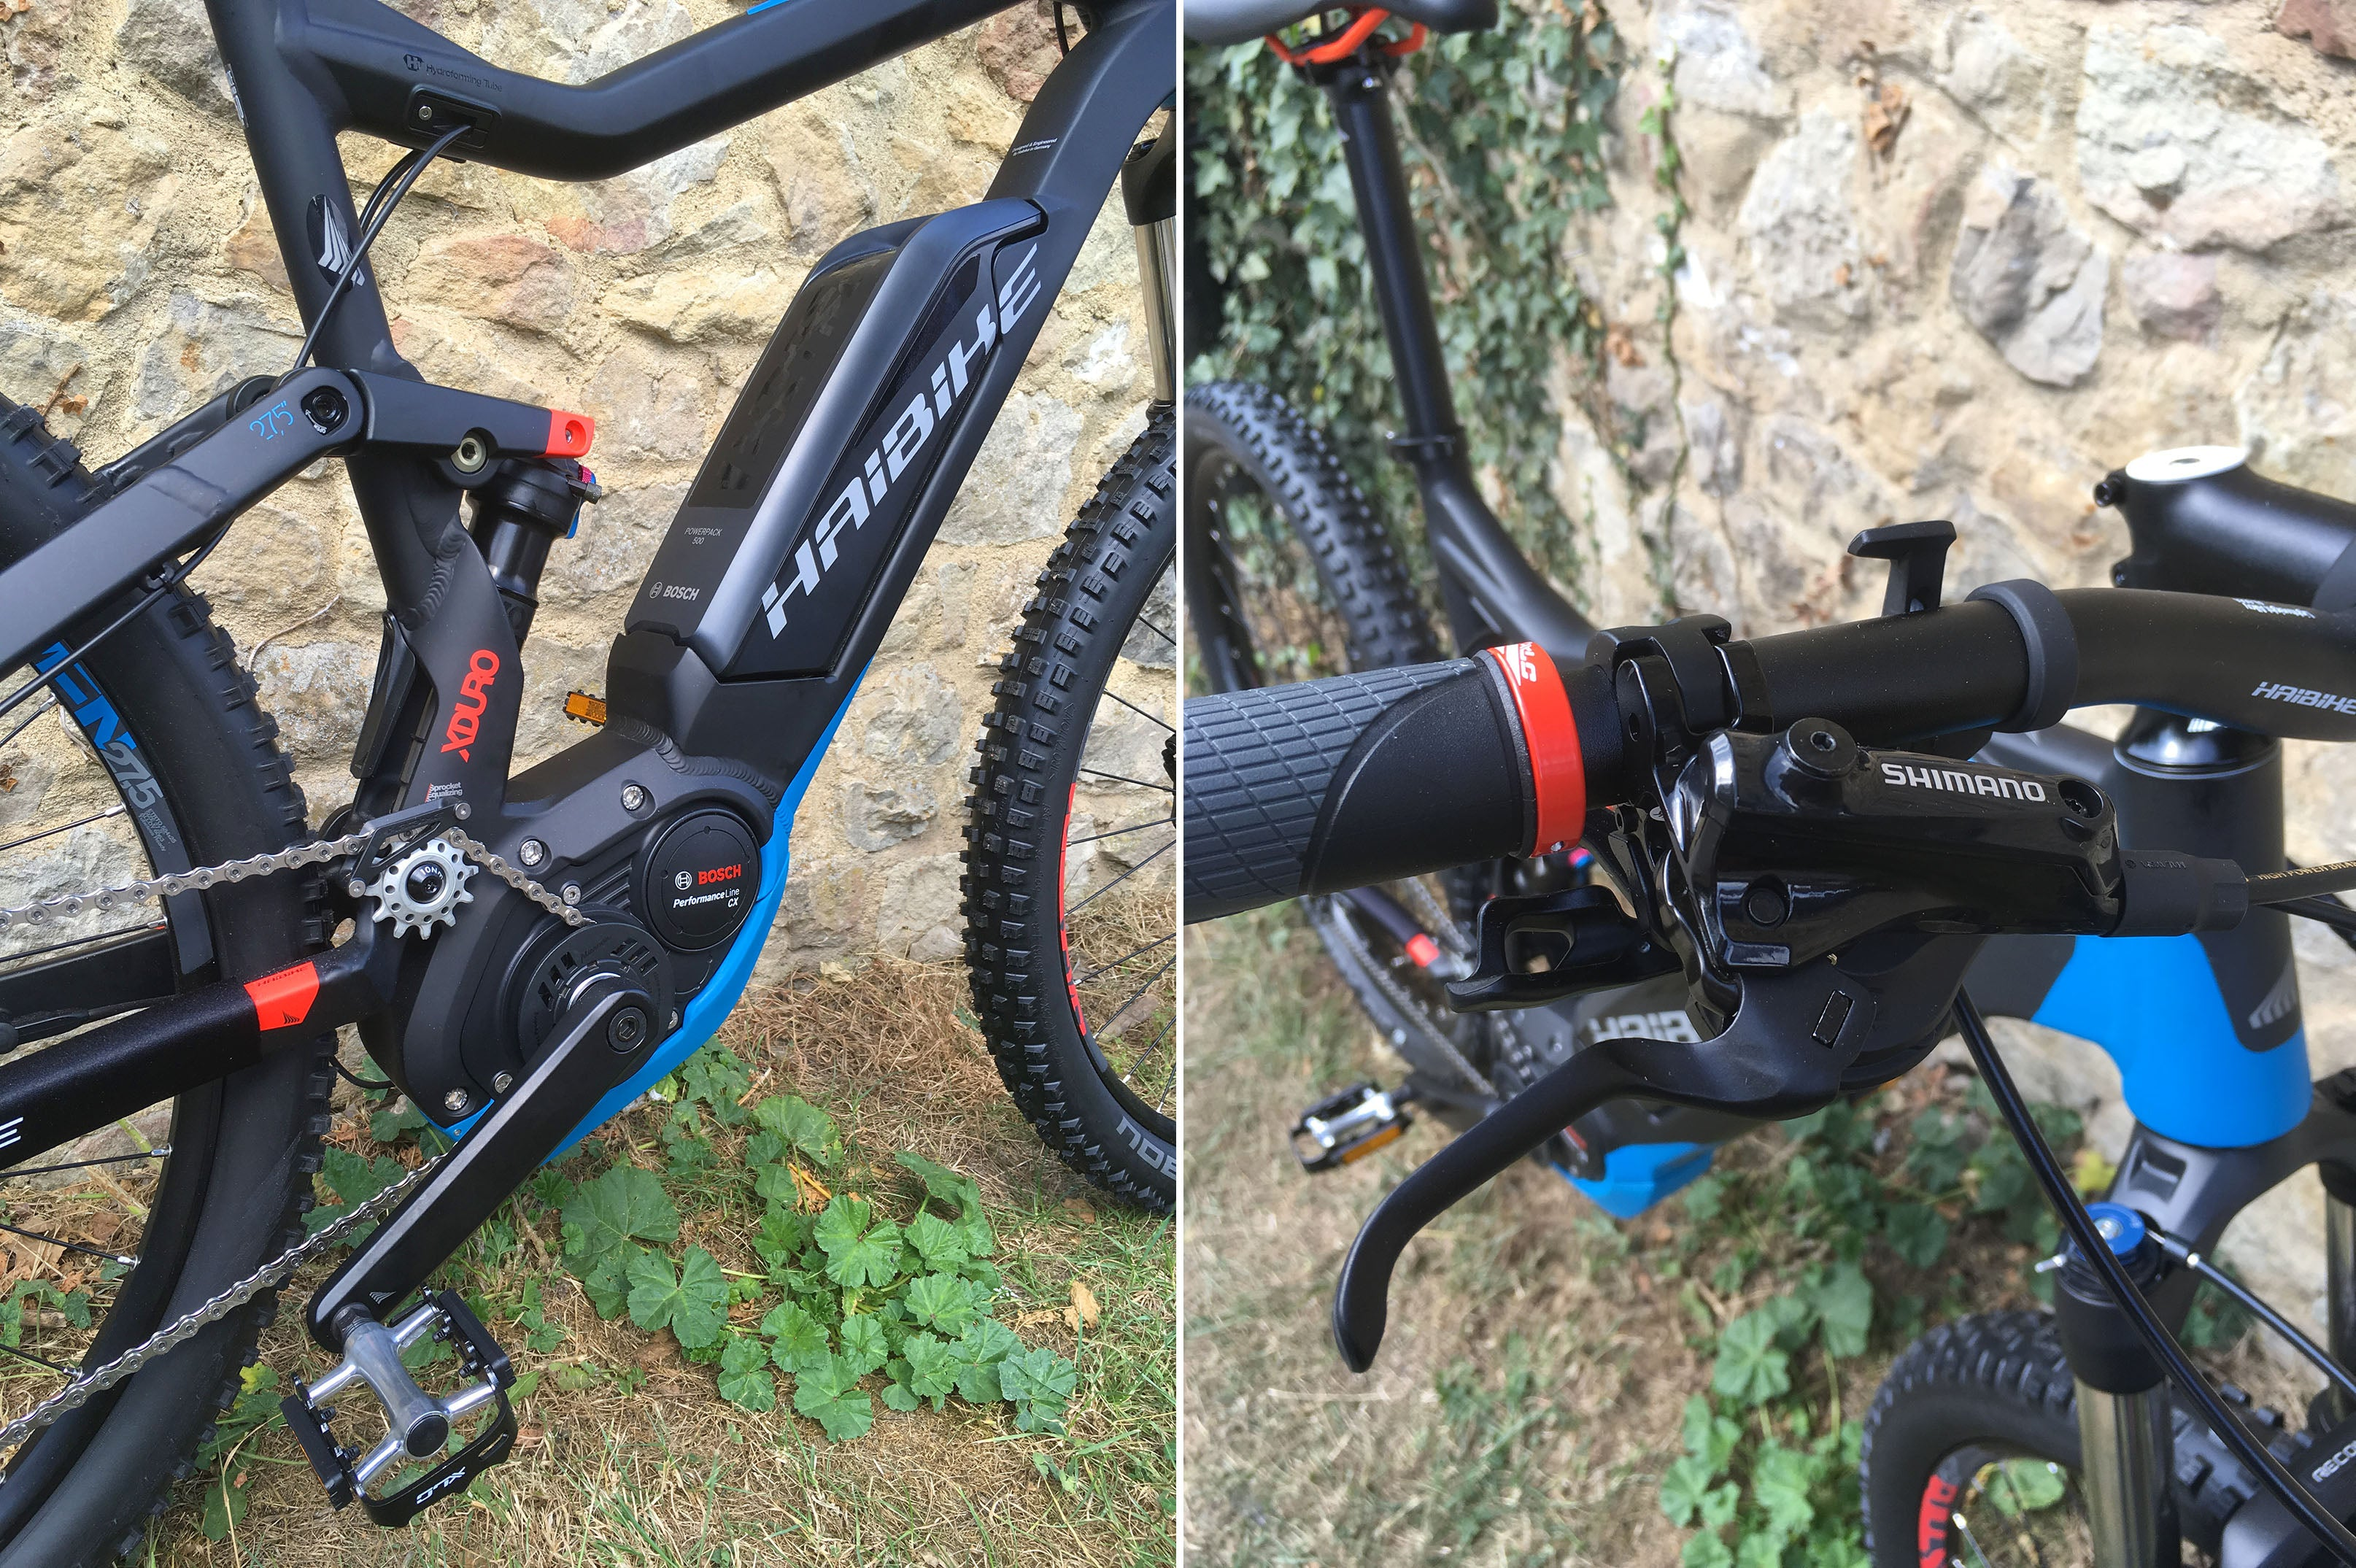 haibike fullseven bosch xduro reviewed tested electric bike